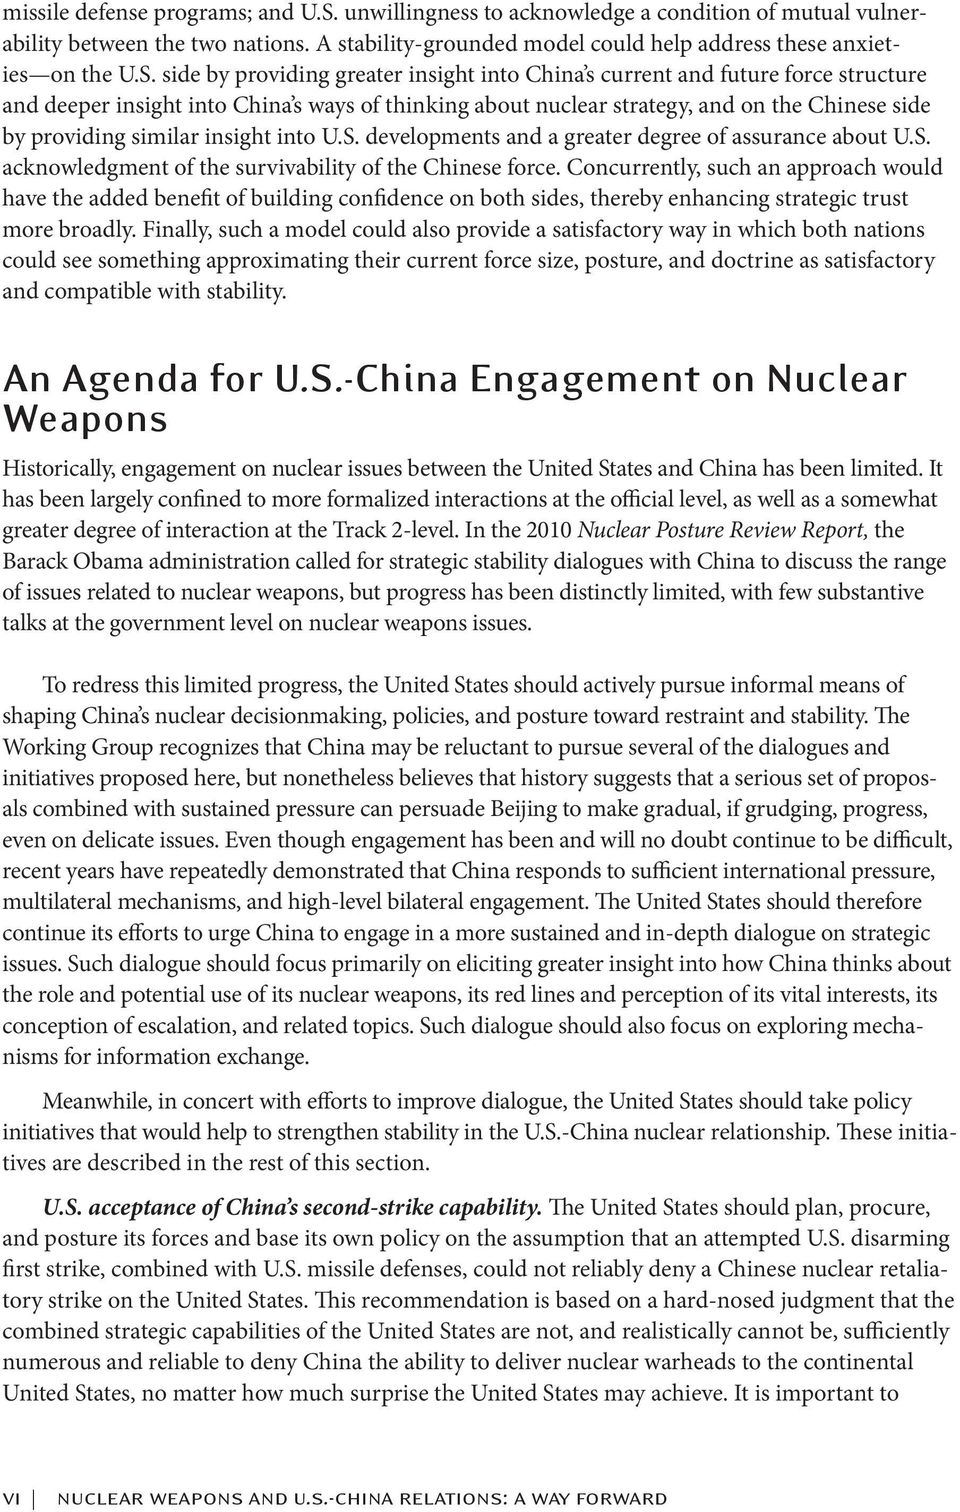 side by providing greater insight into China s current and future force structure and deeper insight into China s ways of thinking about nuclear strategy, and on the Chinese side by providing similar